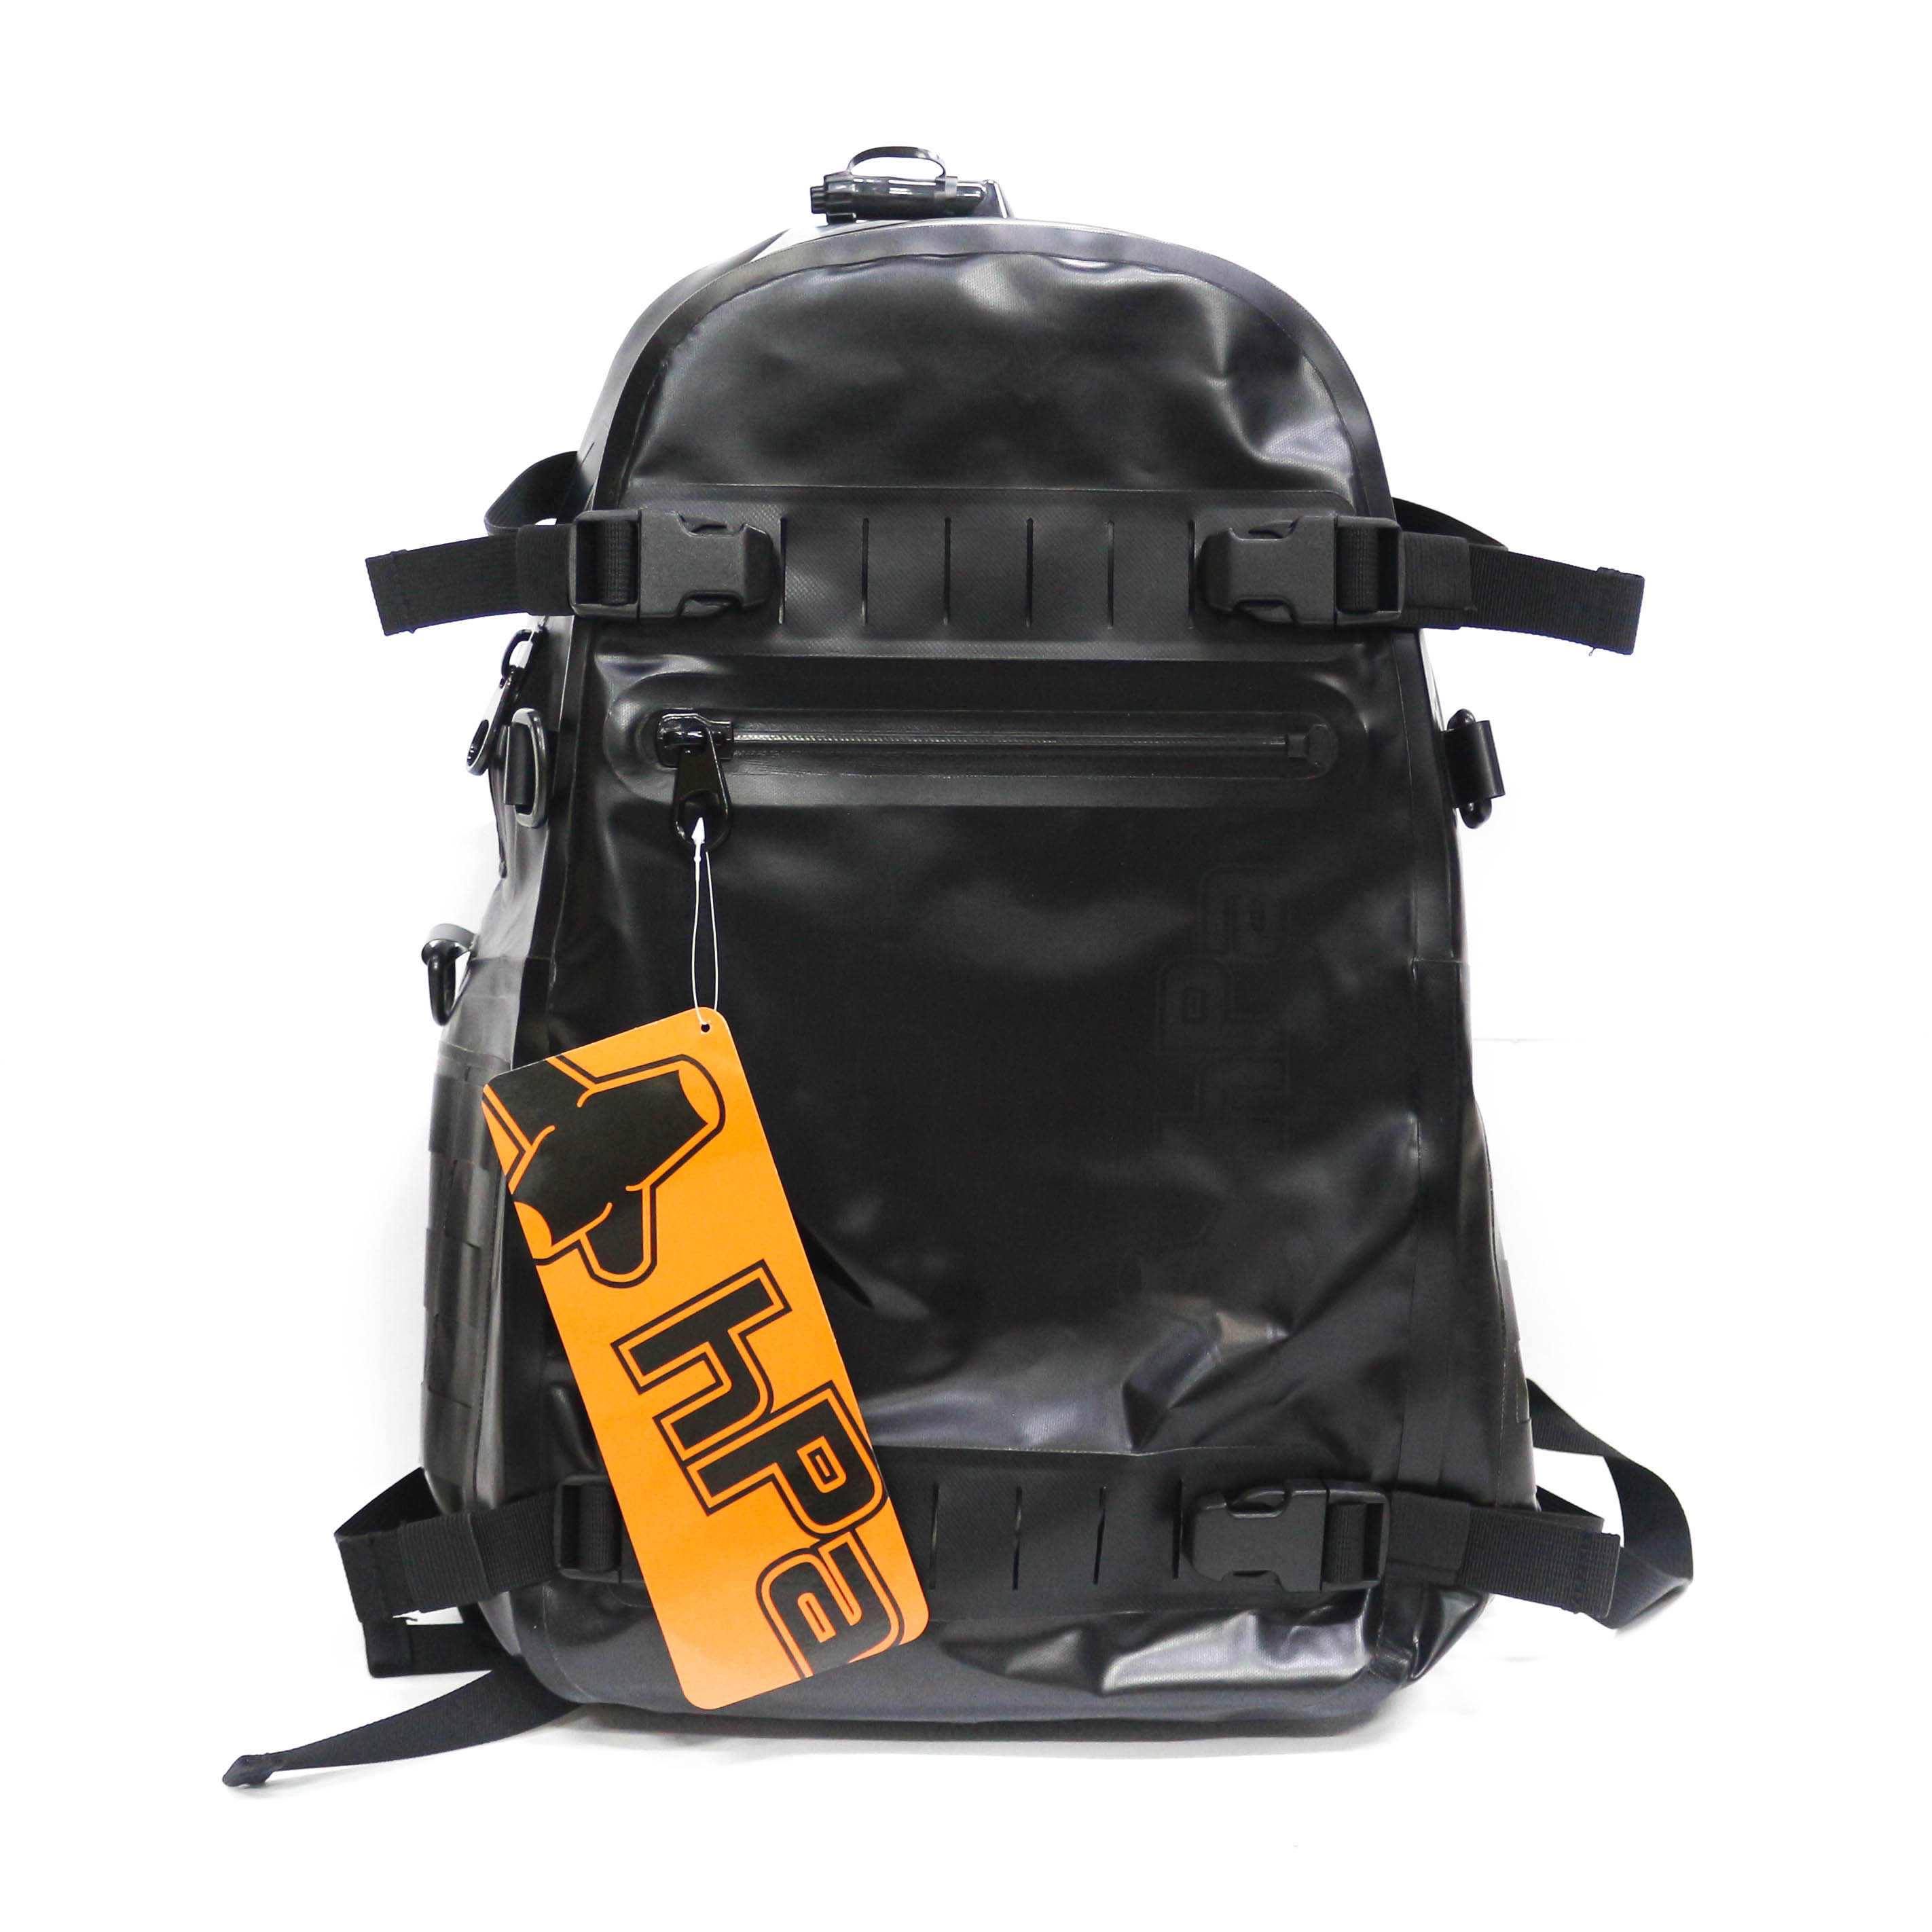 HPA Infladry 25 Backpack 50 x 28 x 18cm 25 litres Black (0023)